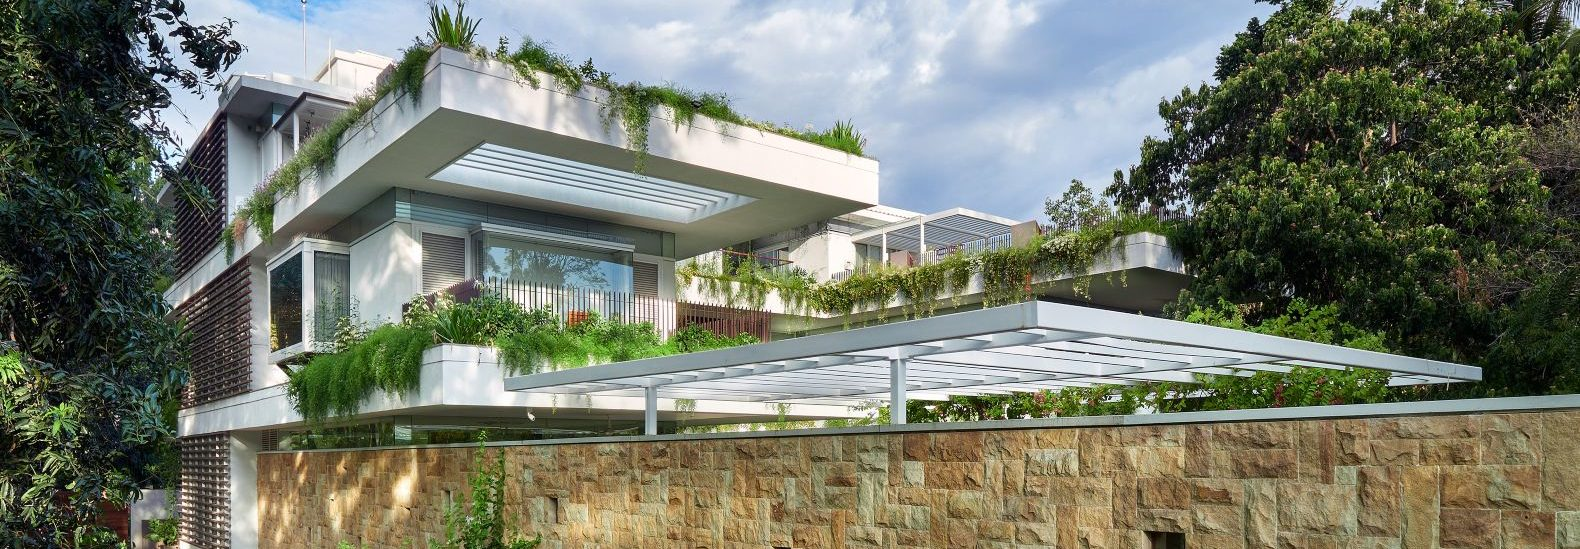 'Hovering' gardens passively cool this energy-efficient home